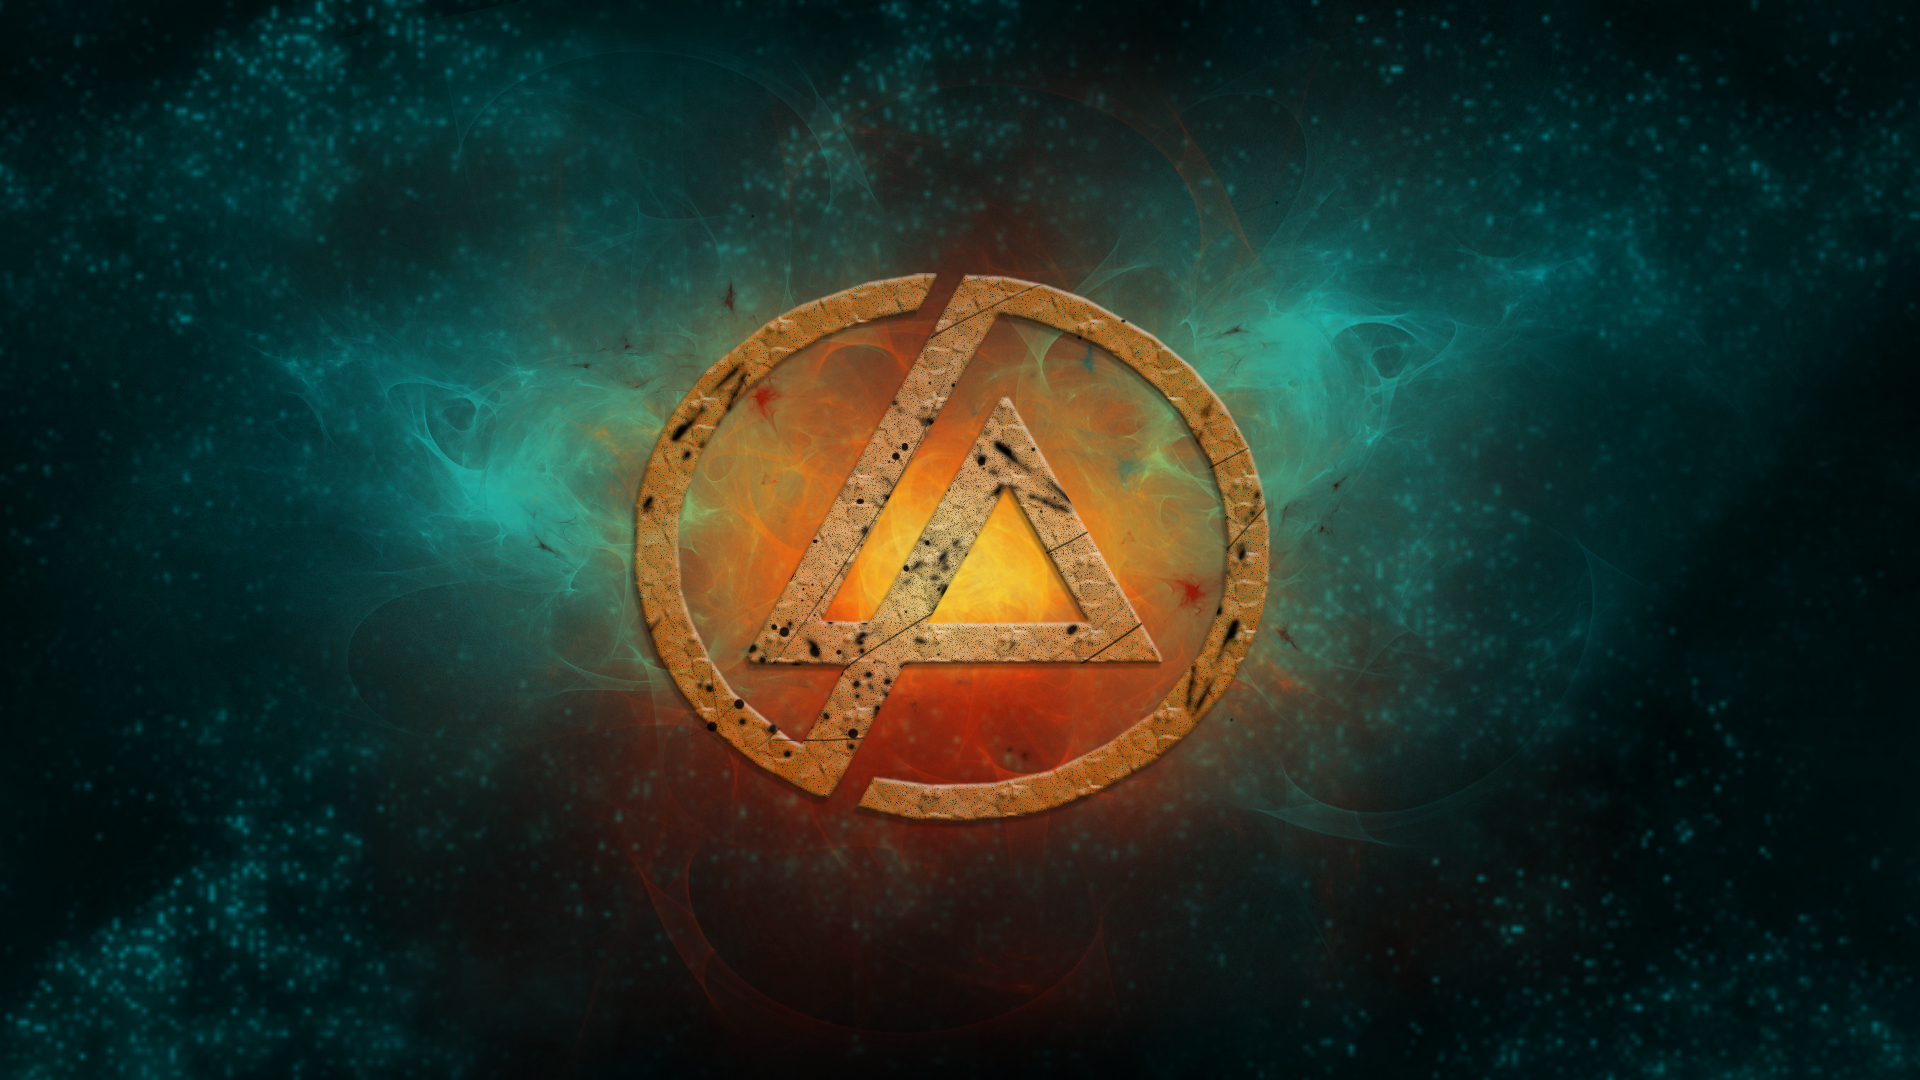 48 Linkin Park Logo Wallpaper On Wallpapersafari